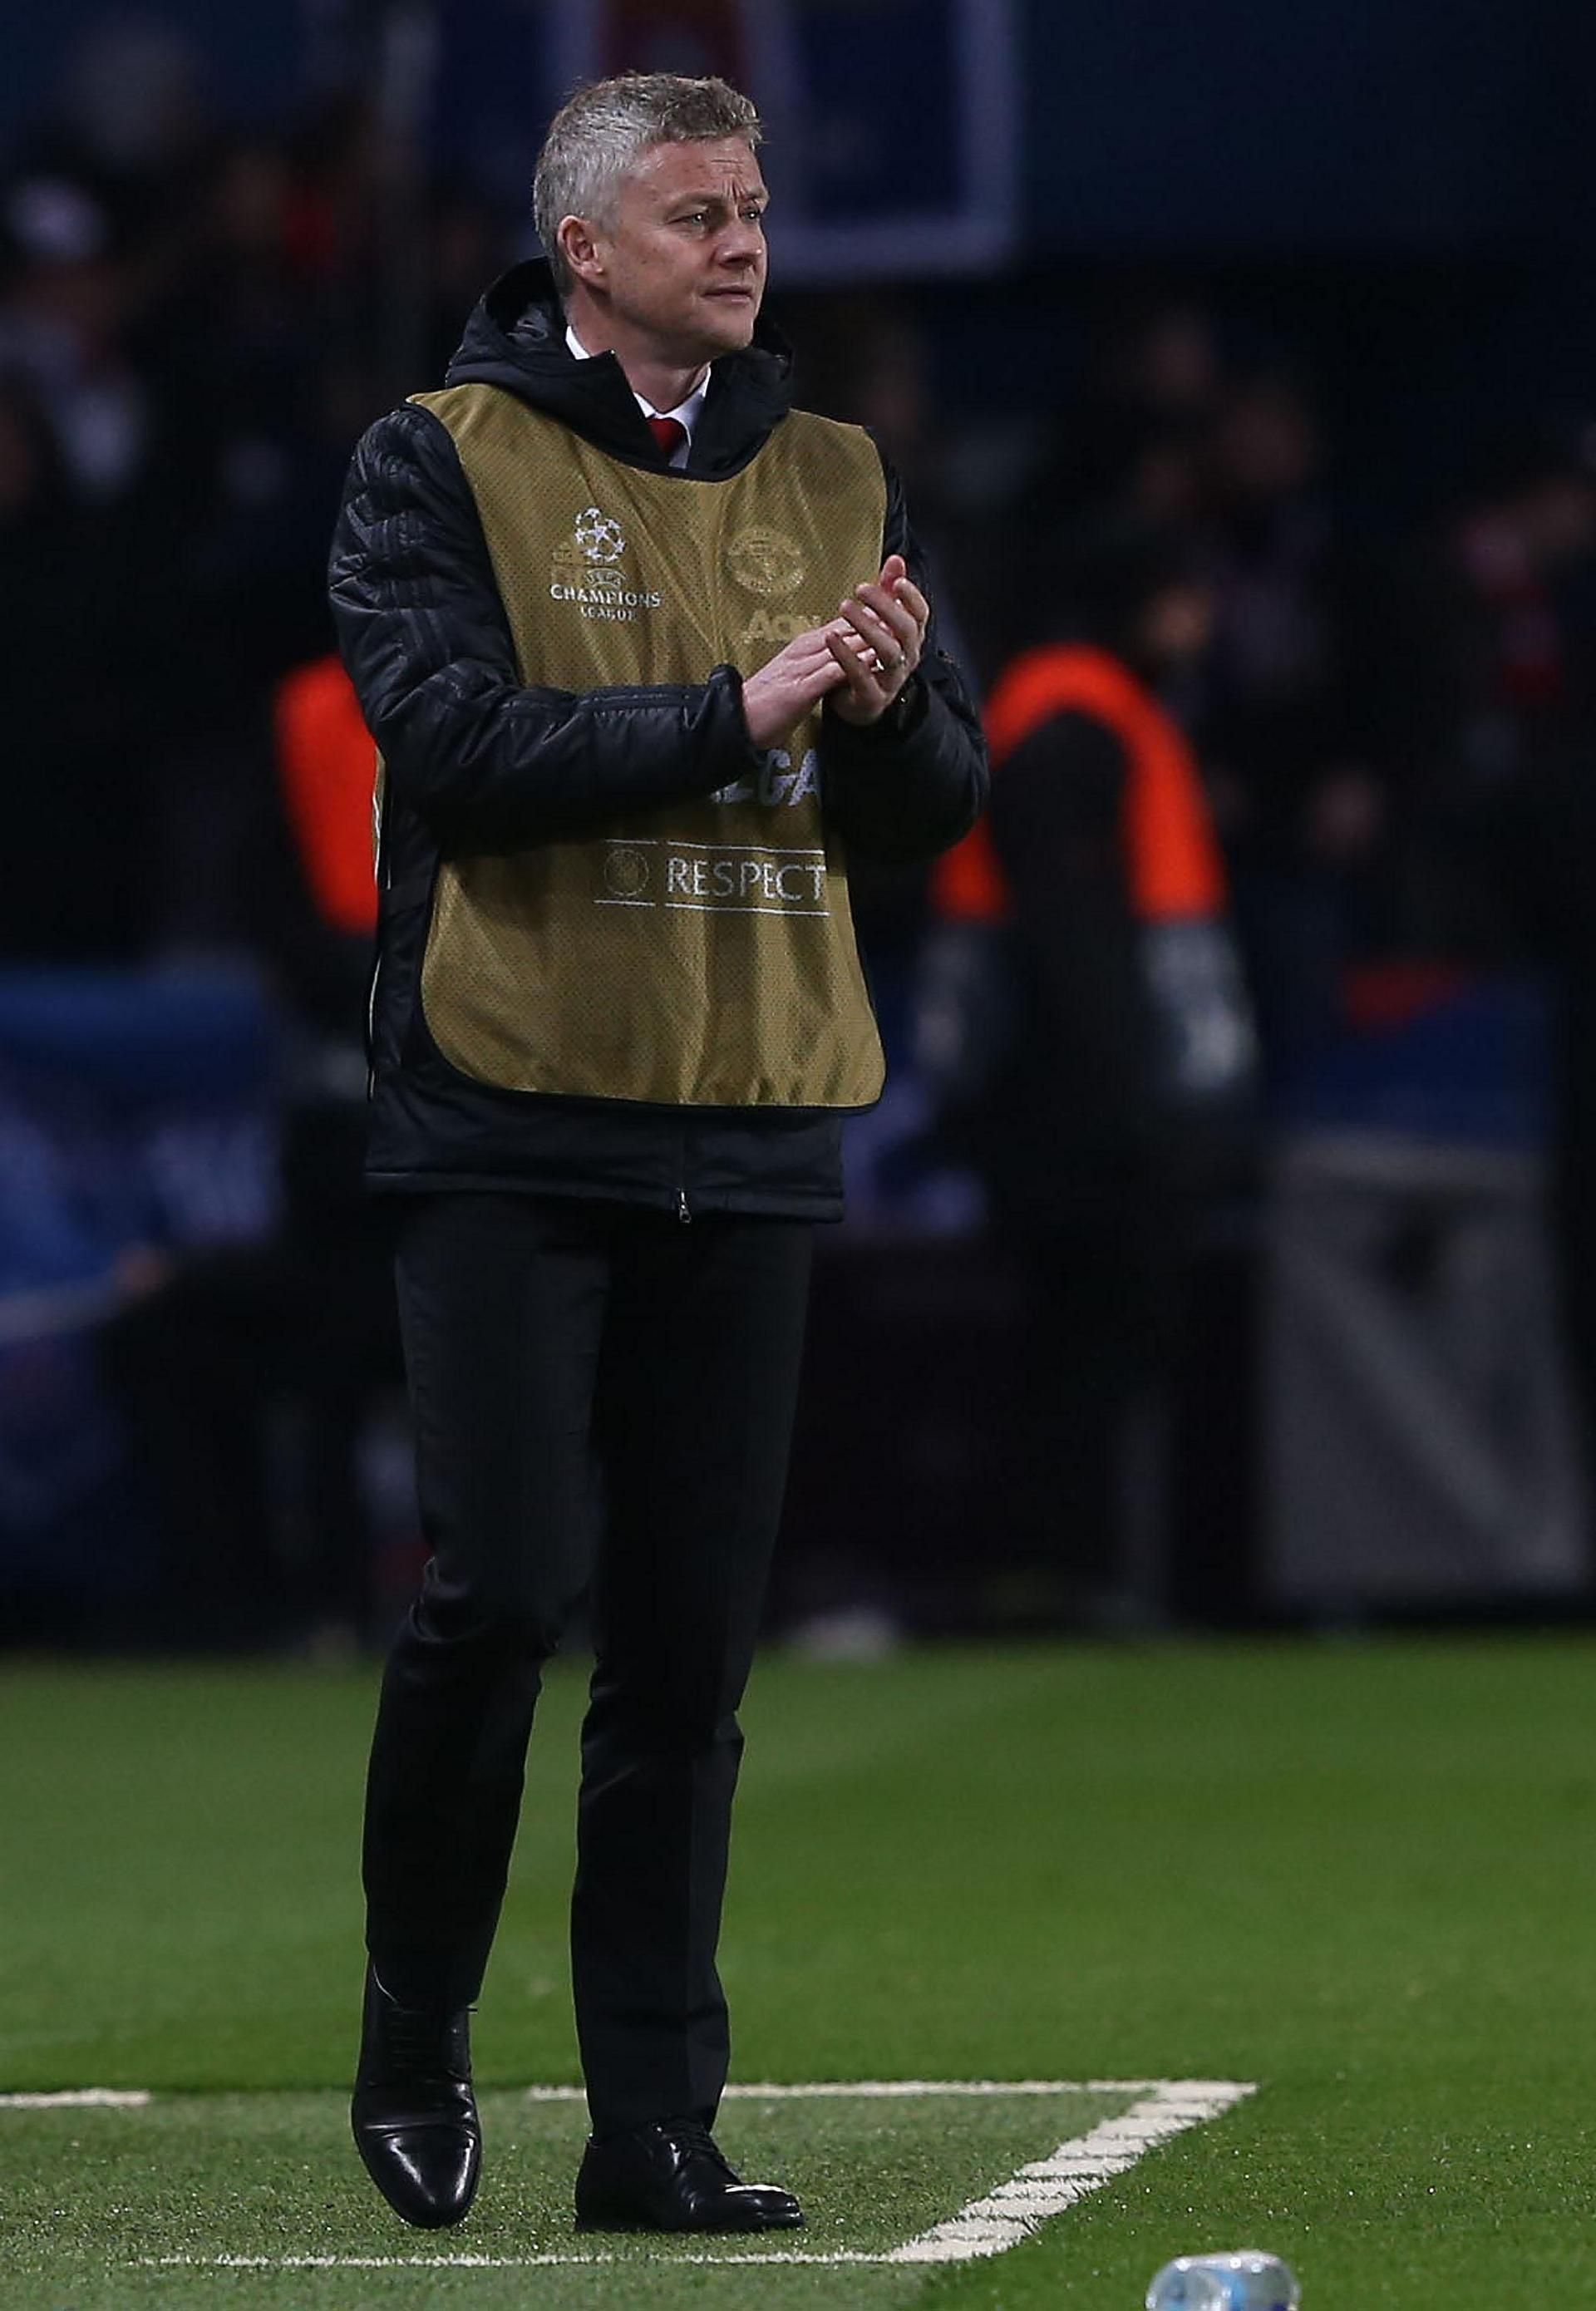 Match pics from PSG v Man United in Champions League